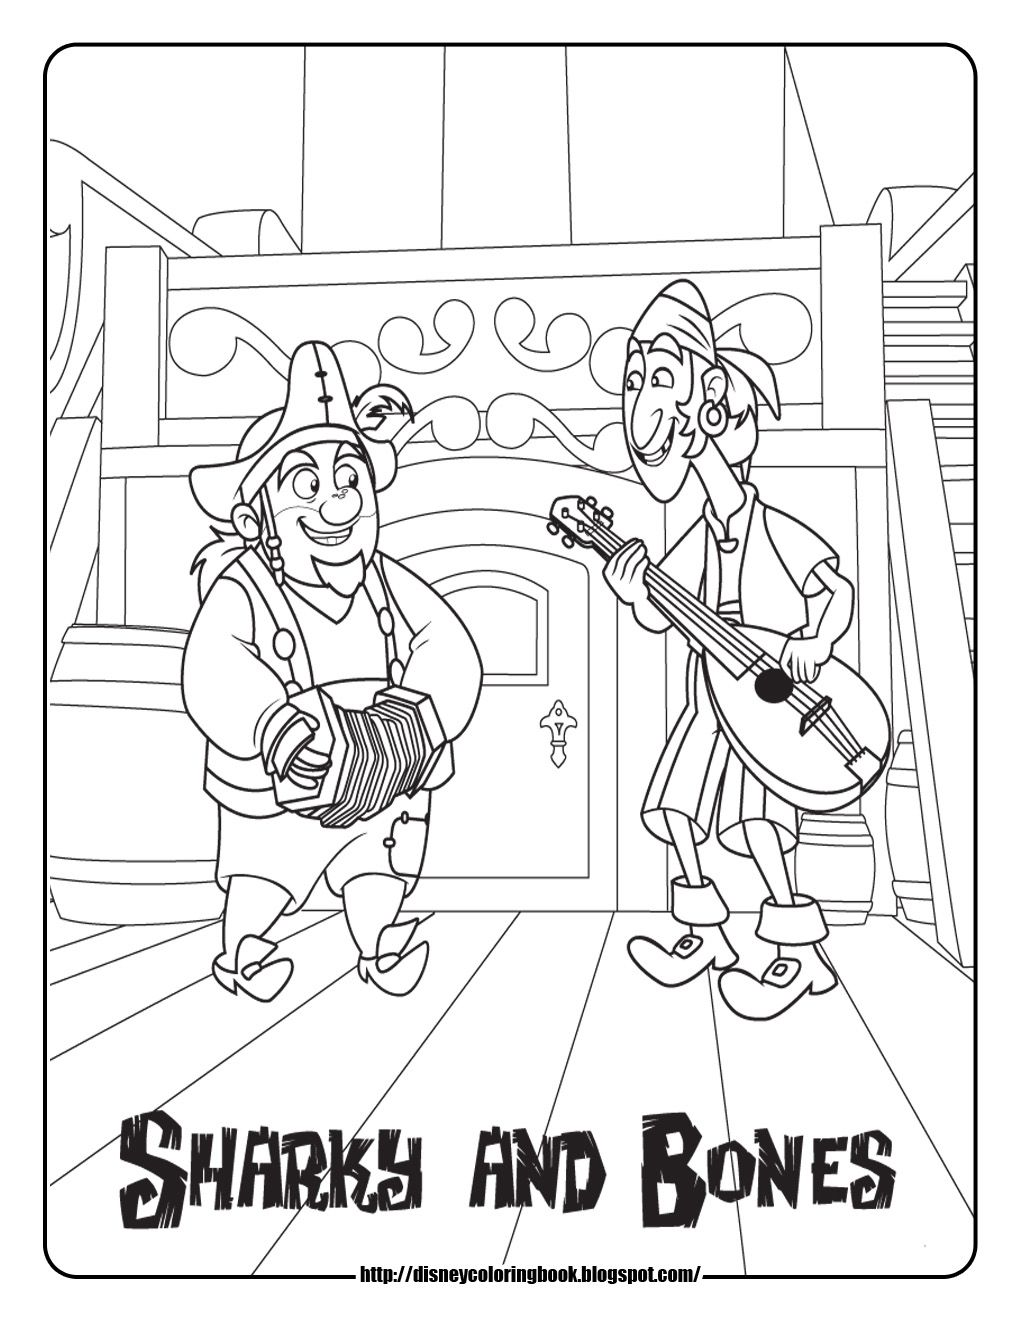 jake and the never land pirates coloring pages sharky and